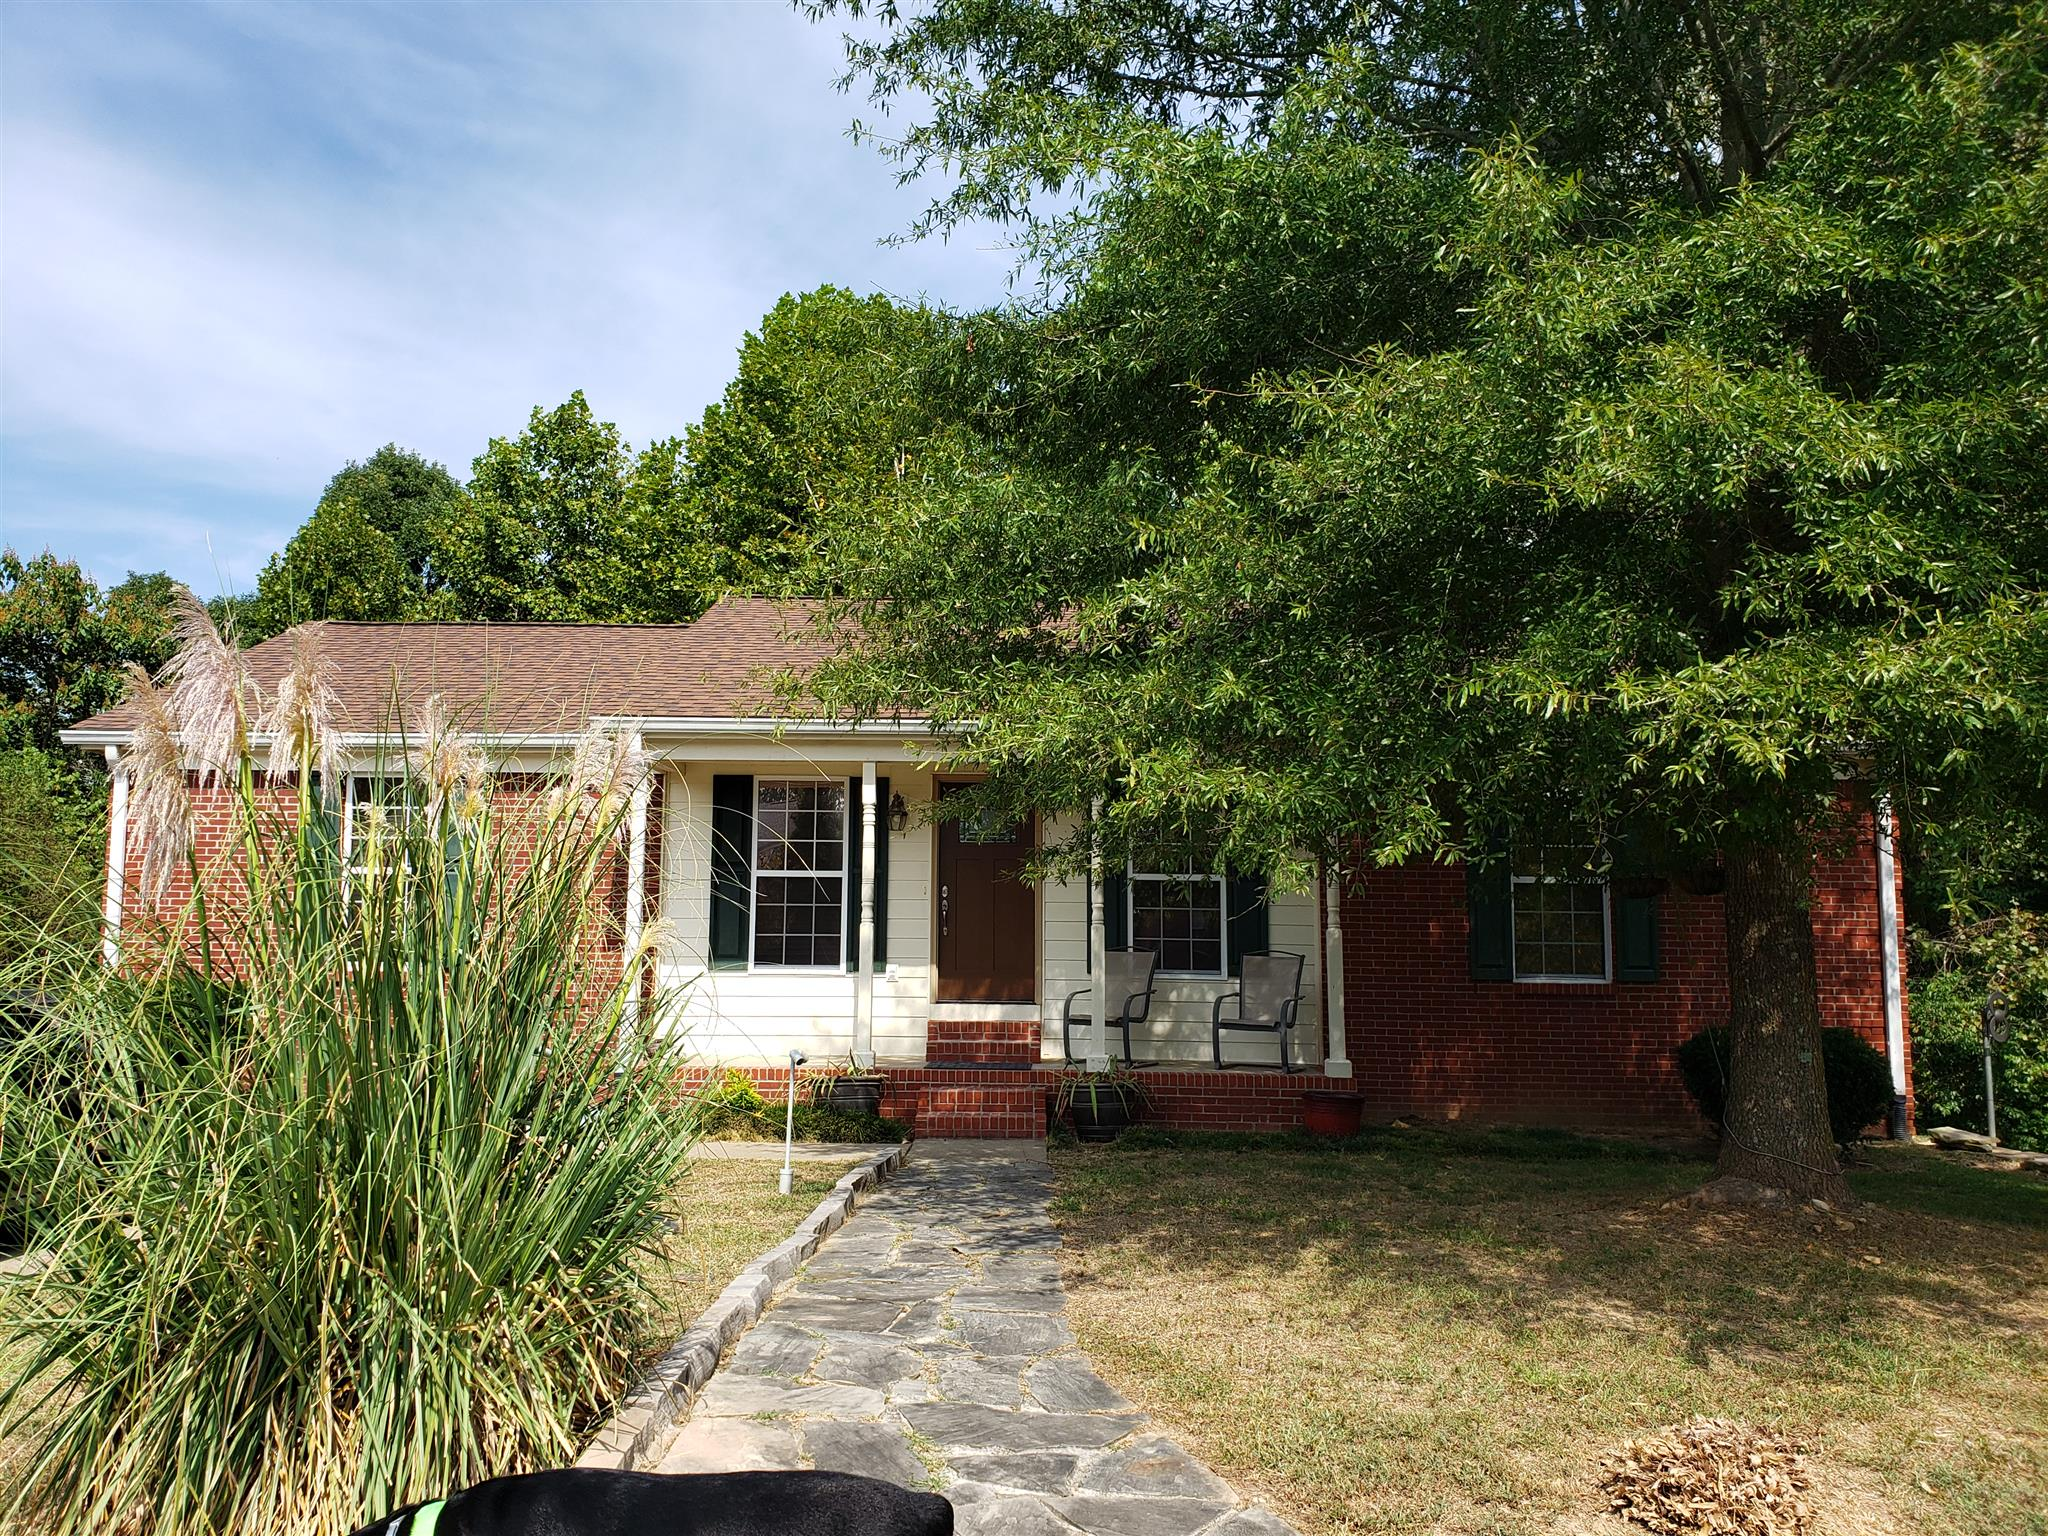 410 Eisenhower Dr, Ashland City, TN 37015 - Ashland City, TN real estate listing